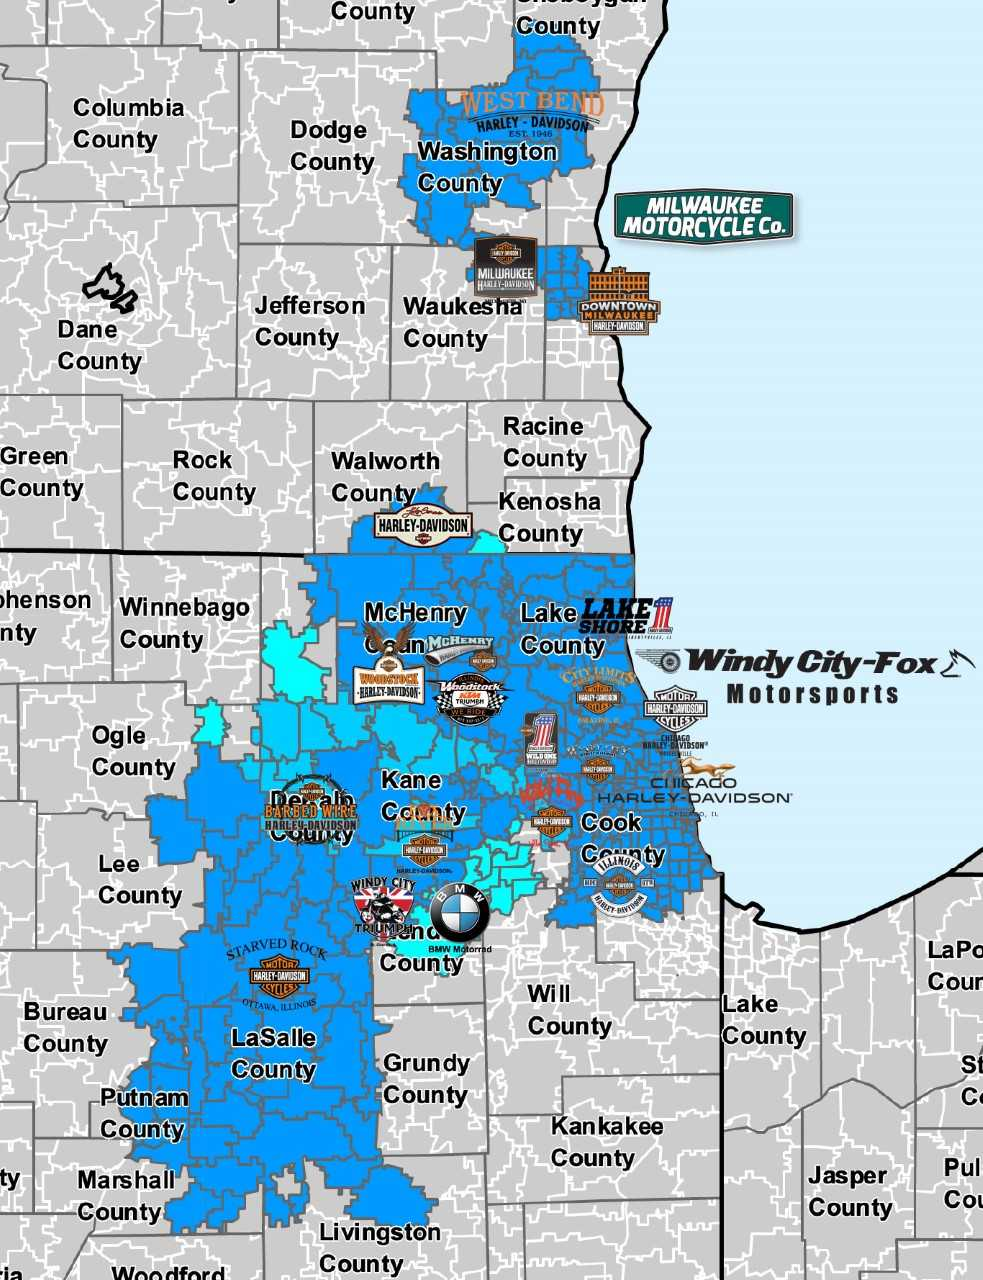 Windy City Motorcycle Company Illinois And Wisconsin Offering